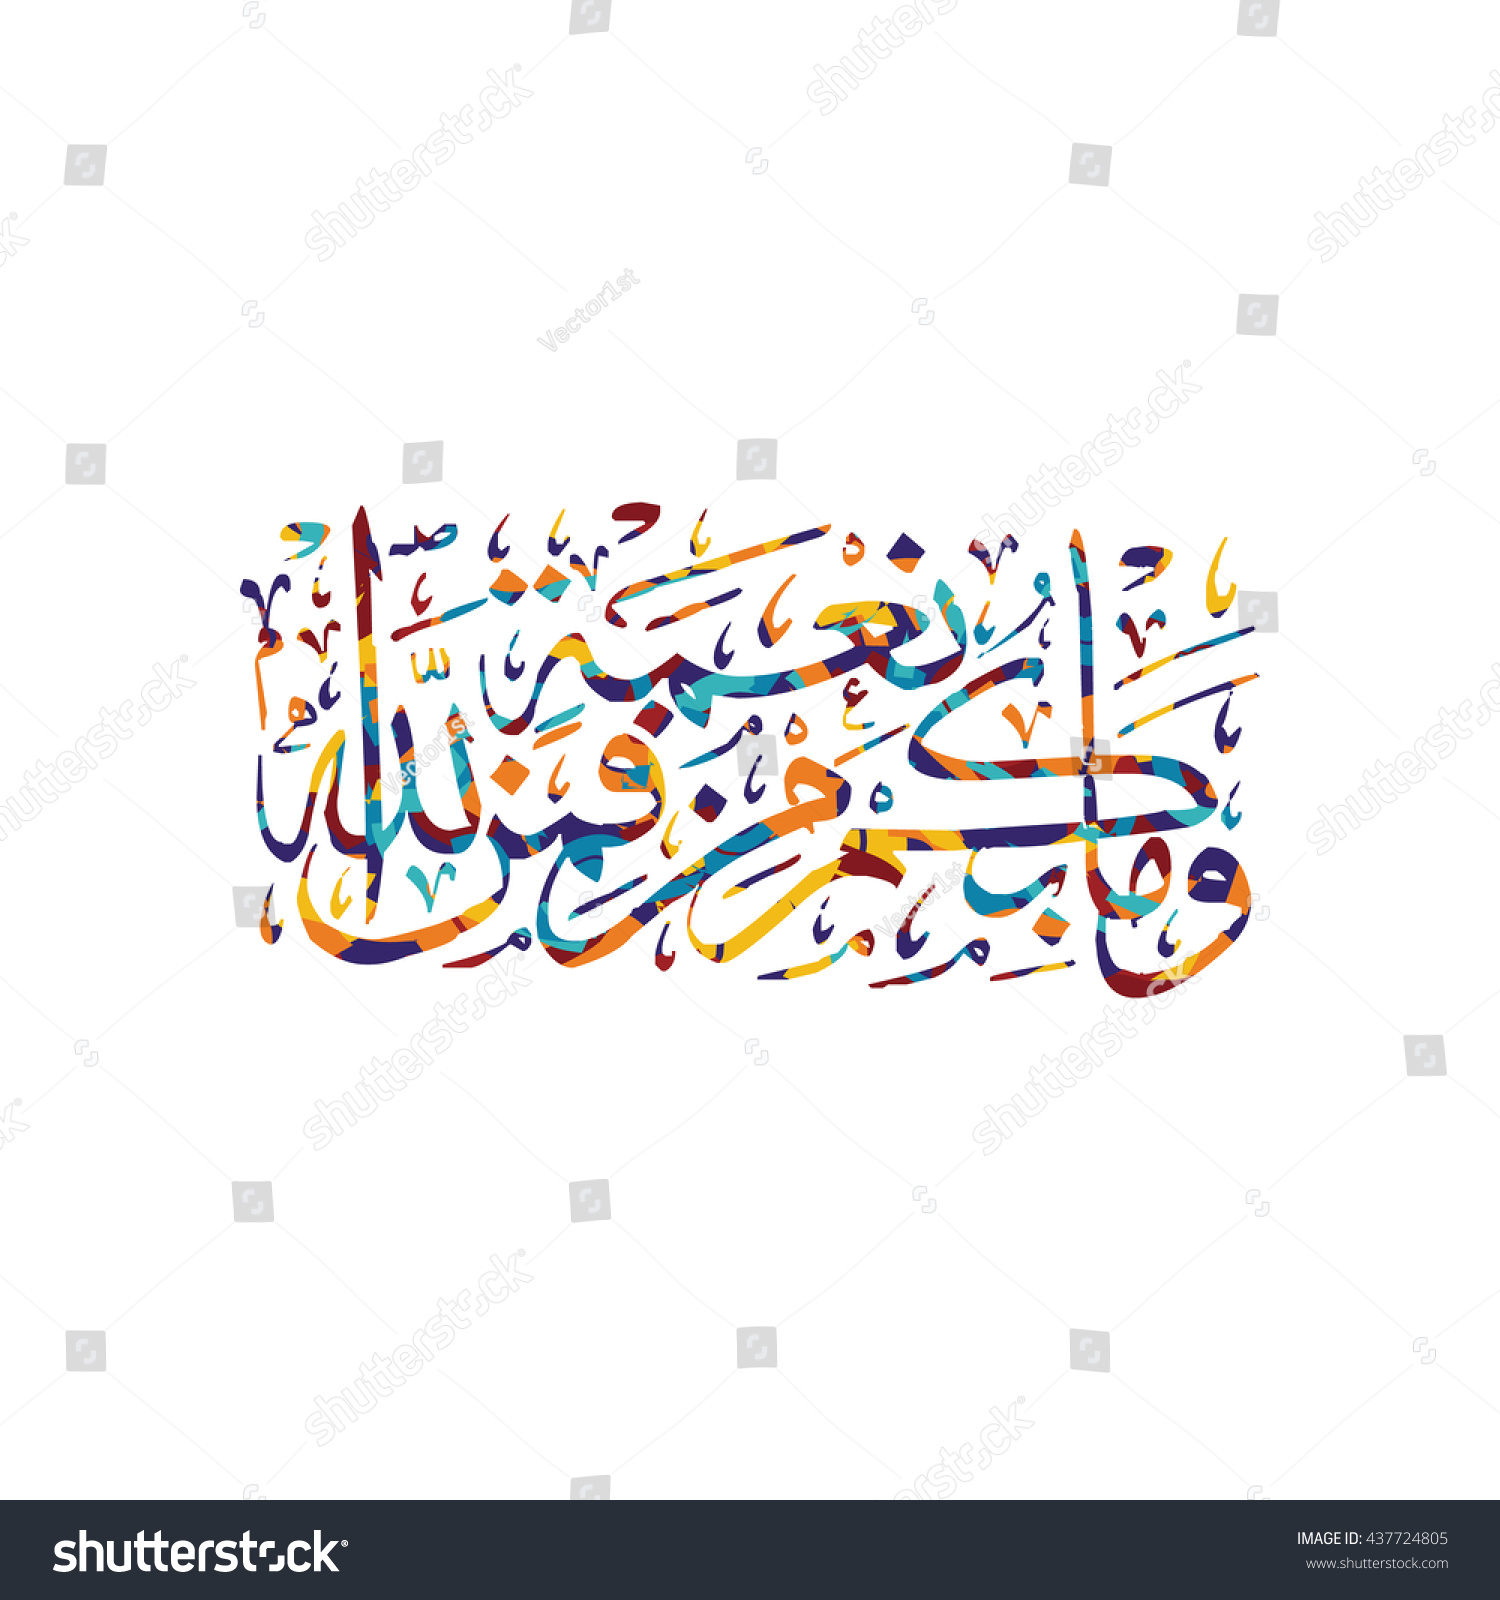 arabic calligraphy almighty god allah most gracious theme muslim faith